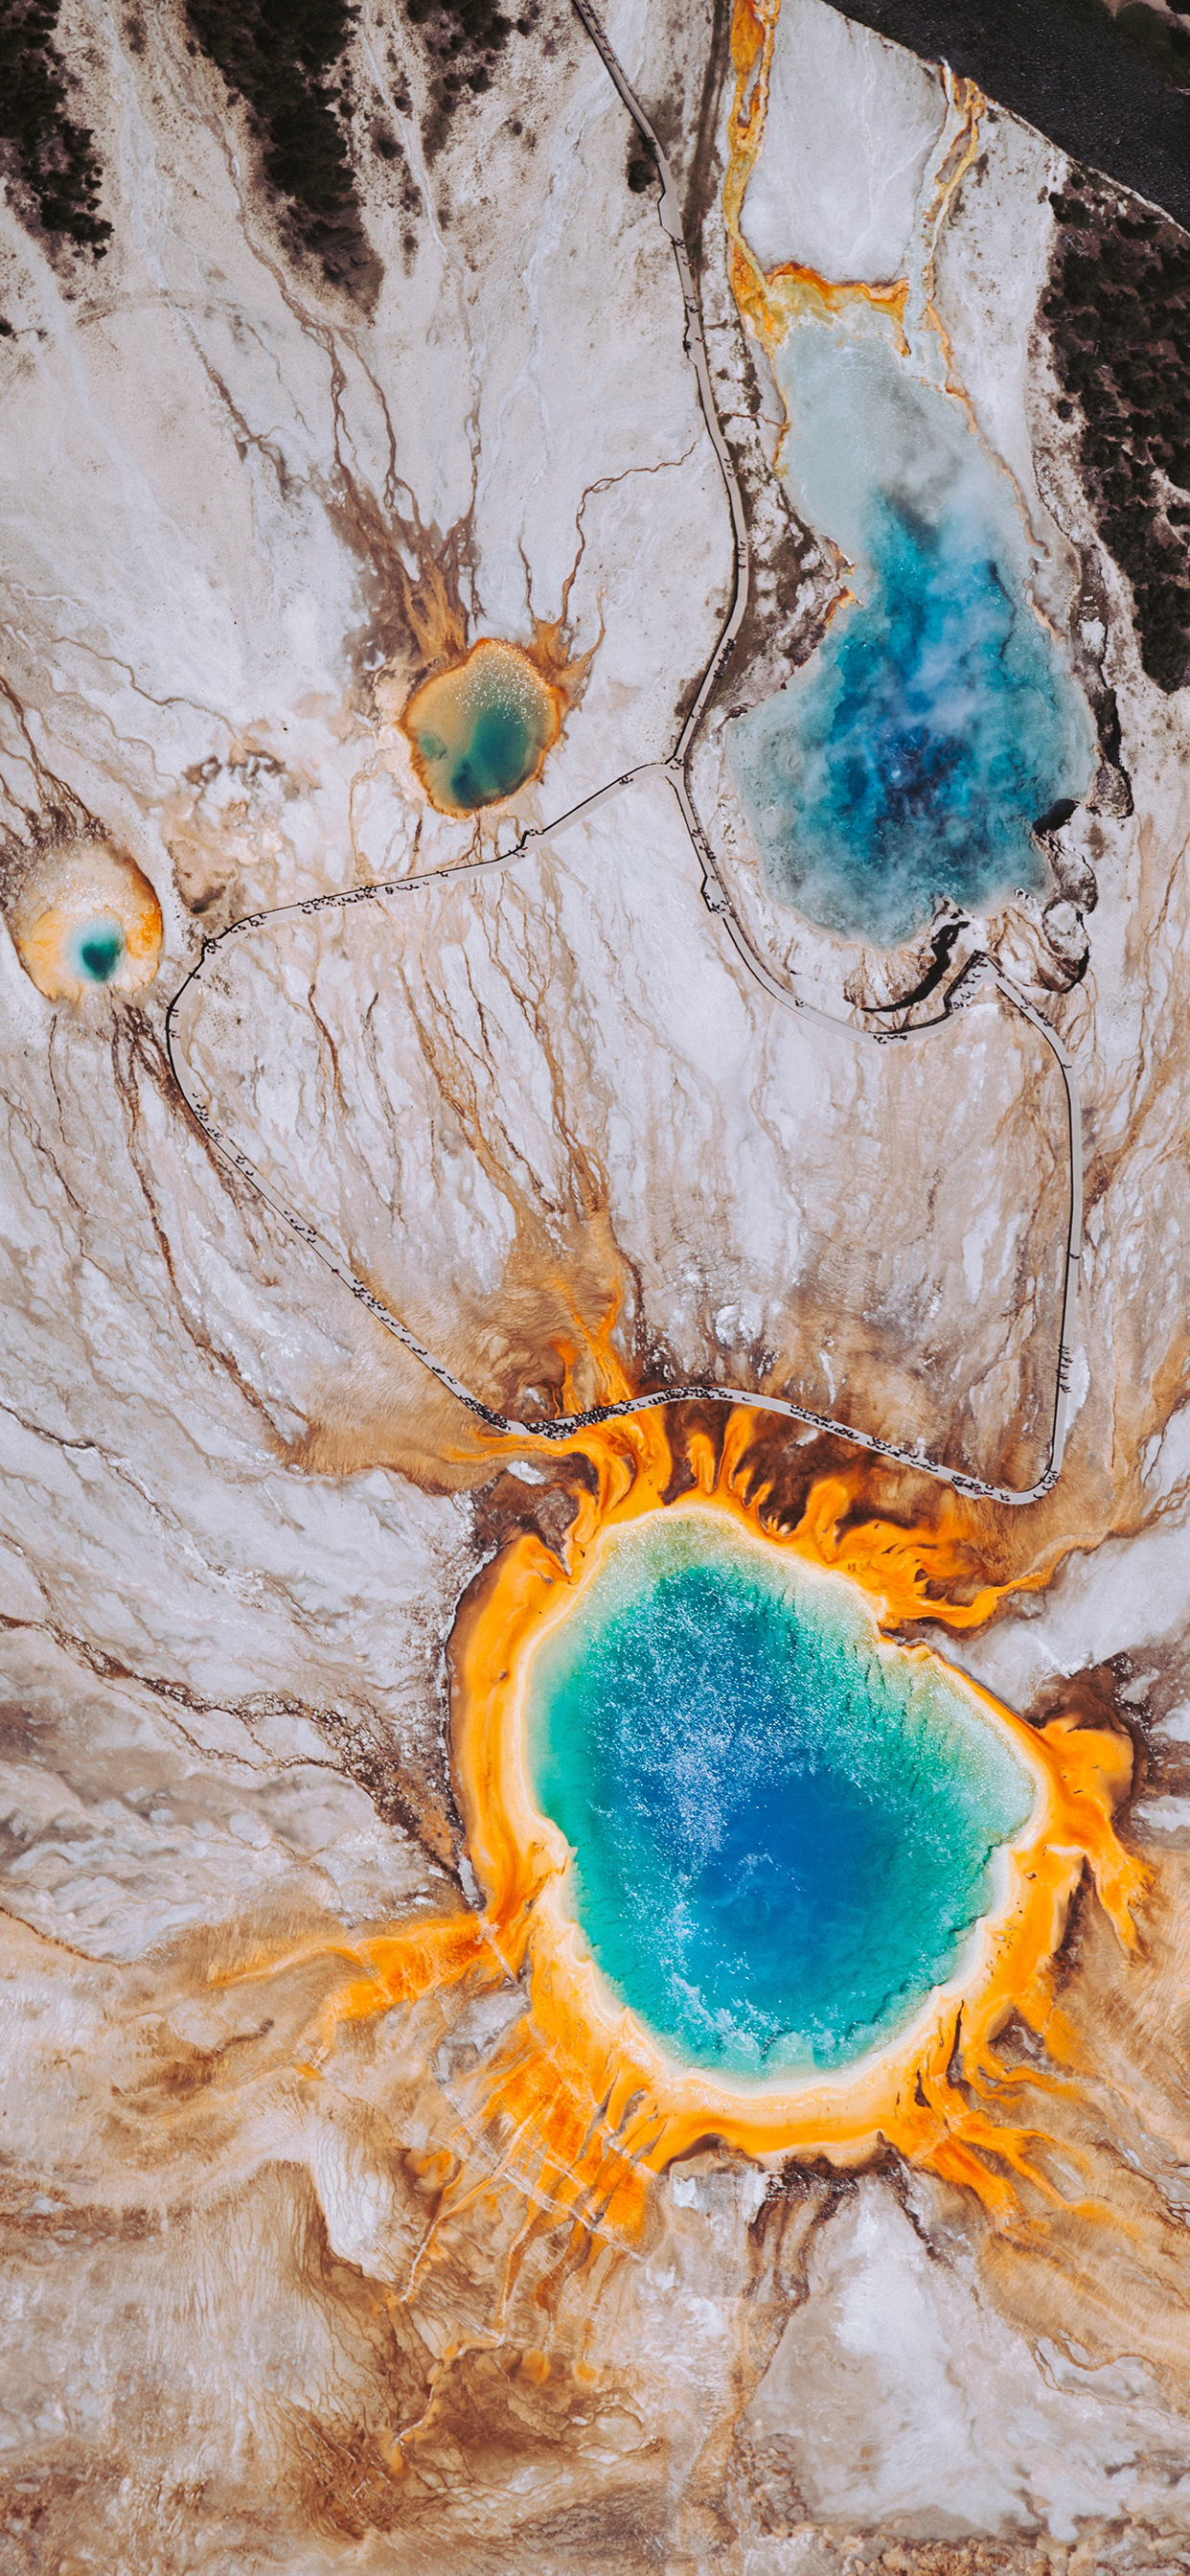 iPhone wallpaper yellowstone Fonds d'écran iPhone du 11/01/2019